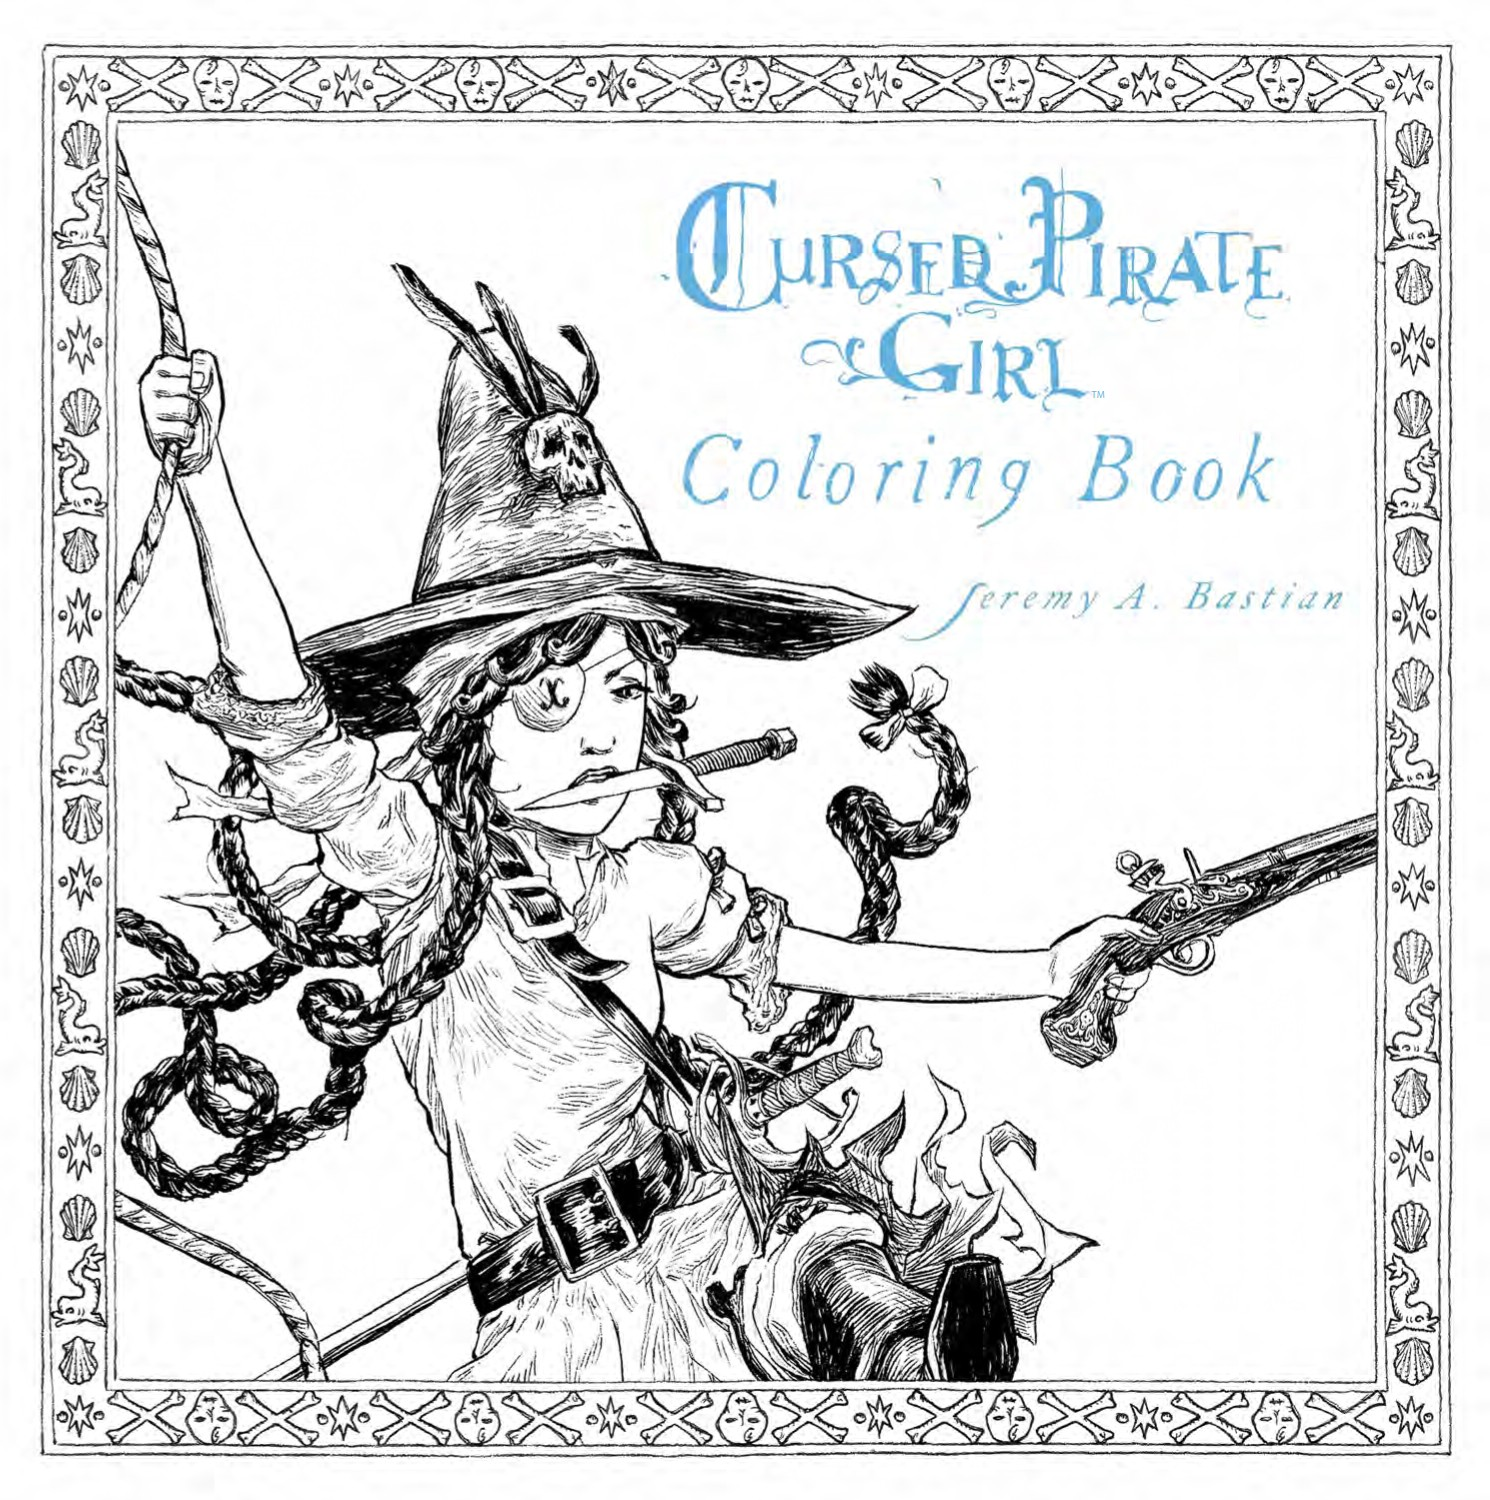 Preview Cursed Pirate Girl Adult Coloring Book